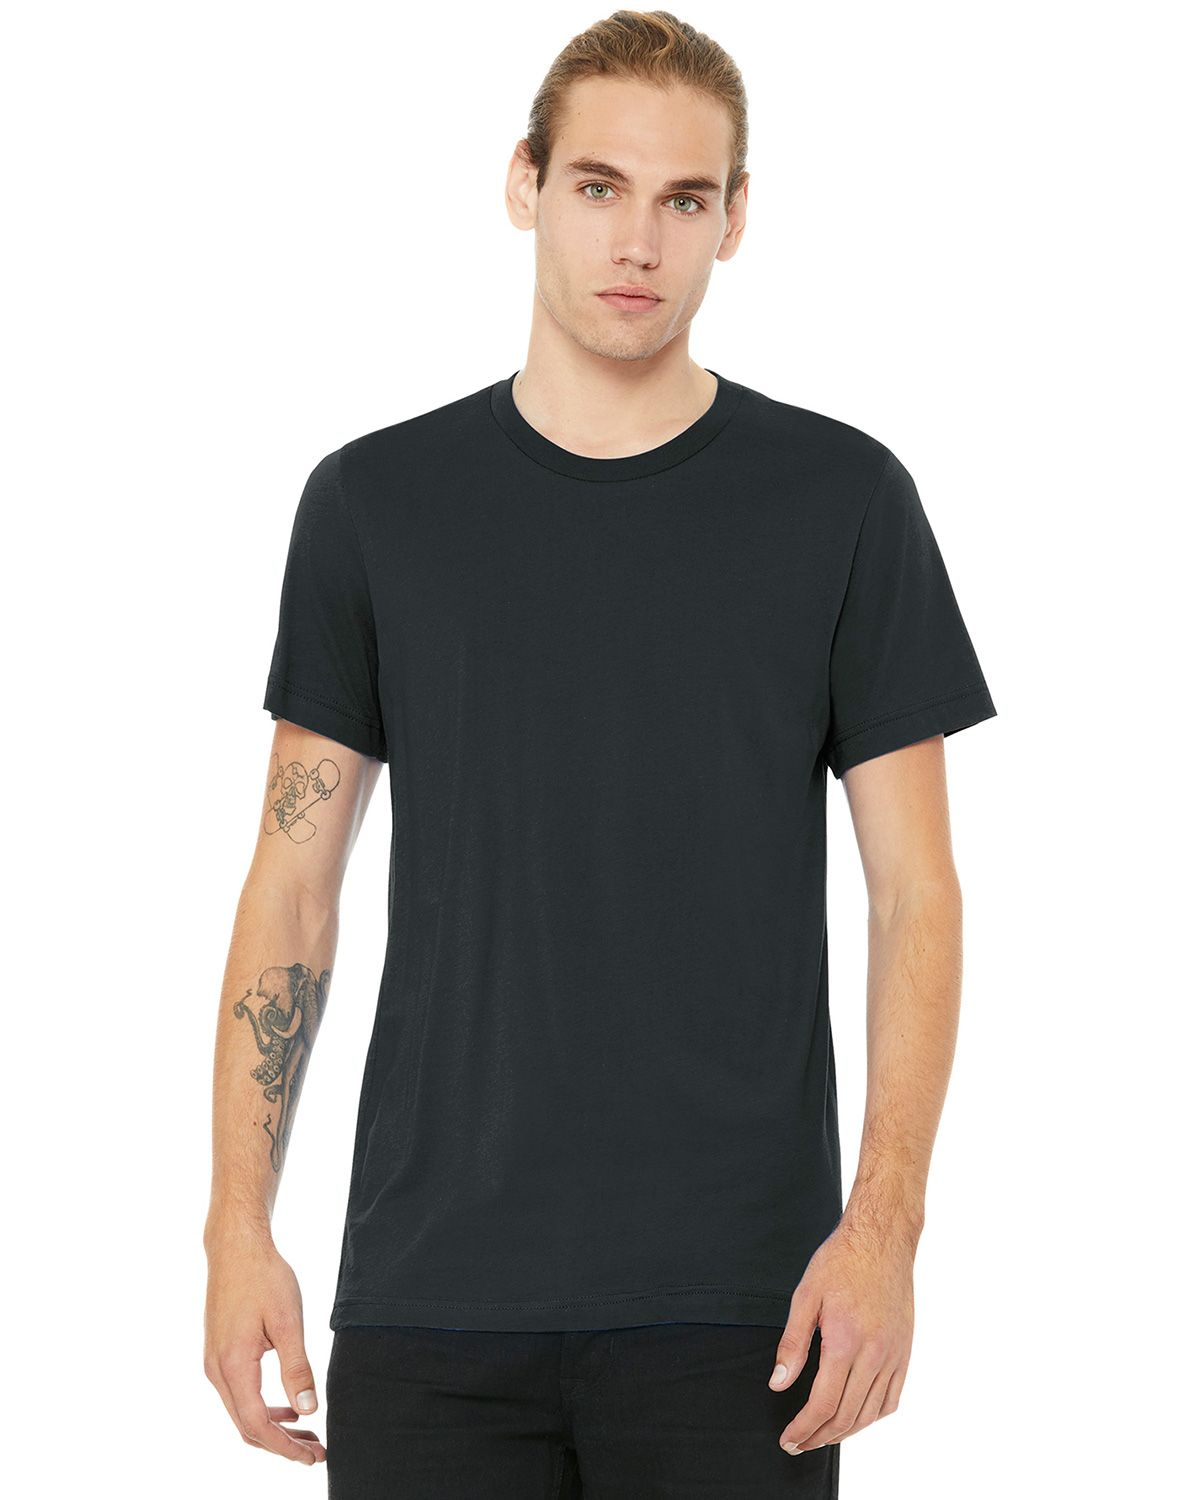 Bella + Canvas BC3001 Jersey Short Sleeve Unisex Tee - Dark Grey - XS from Bella + Canvas